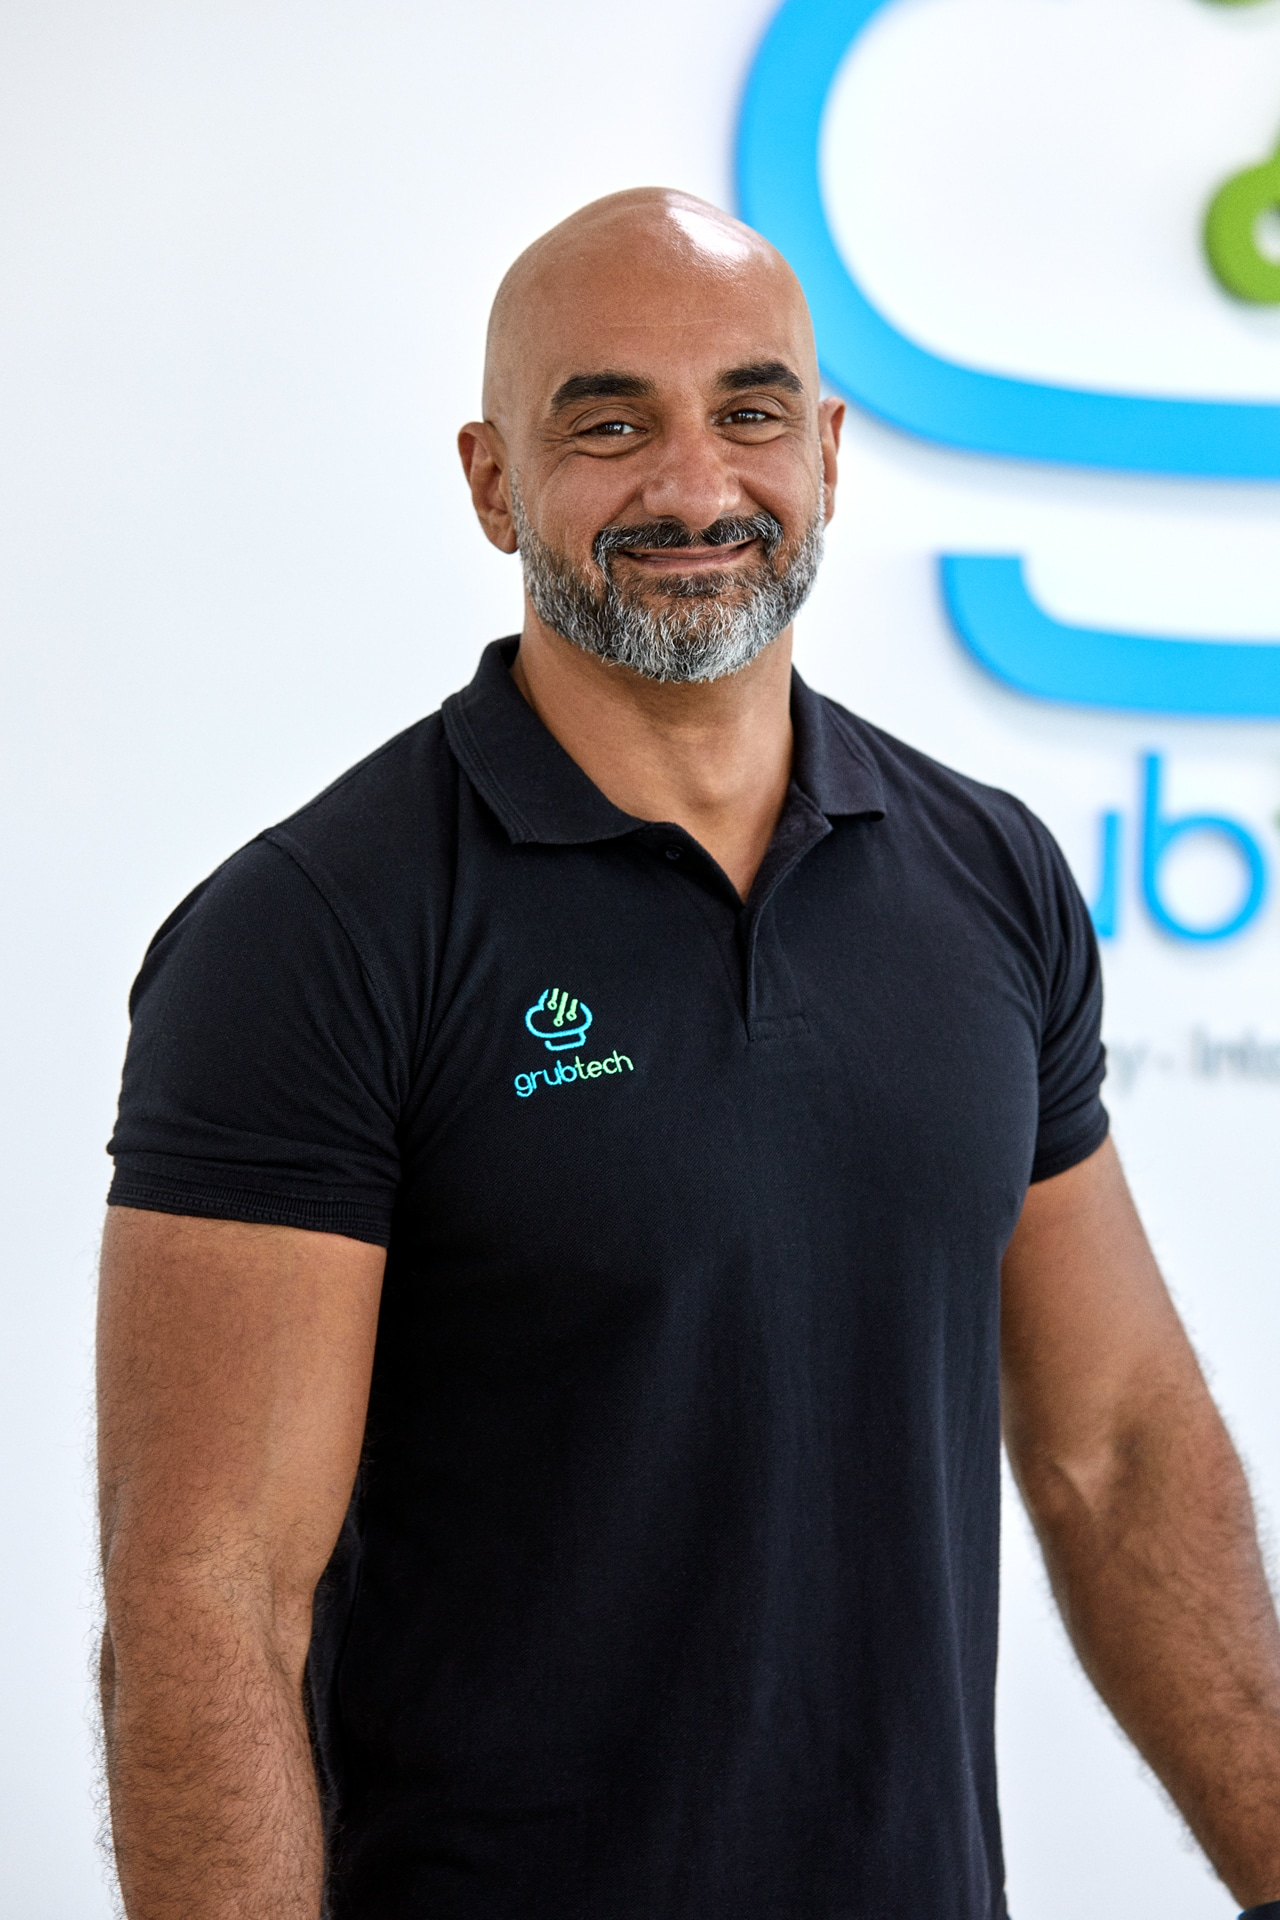 Mohamed Fayed's grubtech